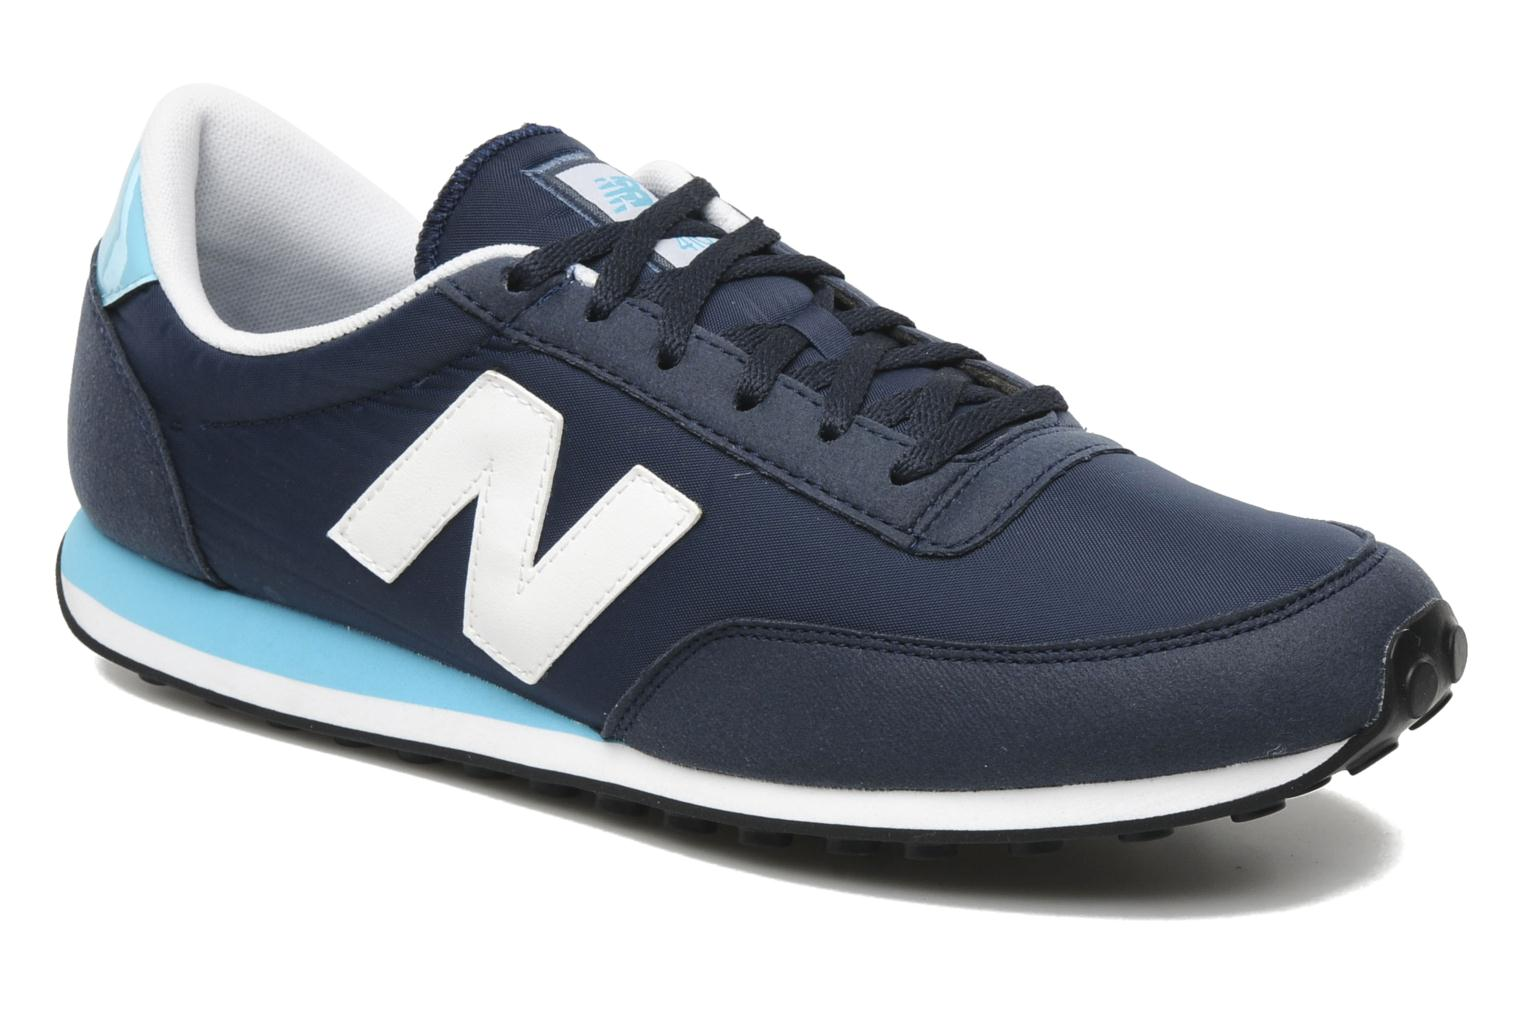 new balance u410 trainers in blue at 136179. Black Bedroom Furniture Sets. Home Design Ideas